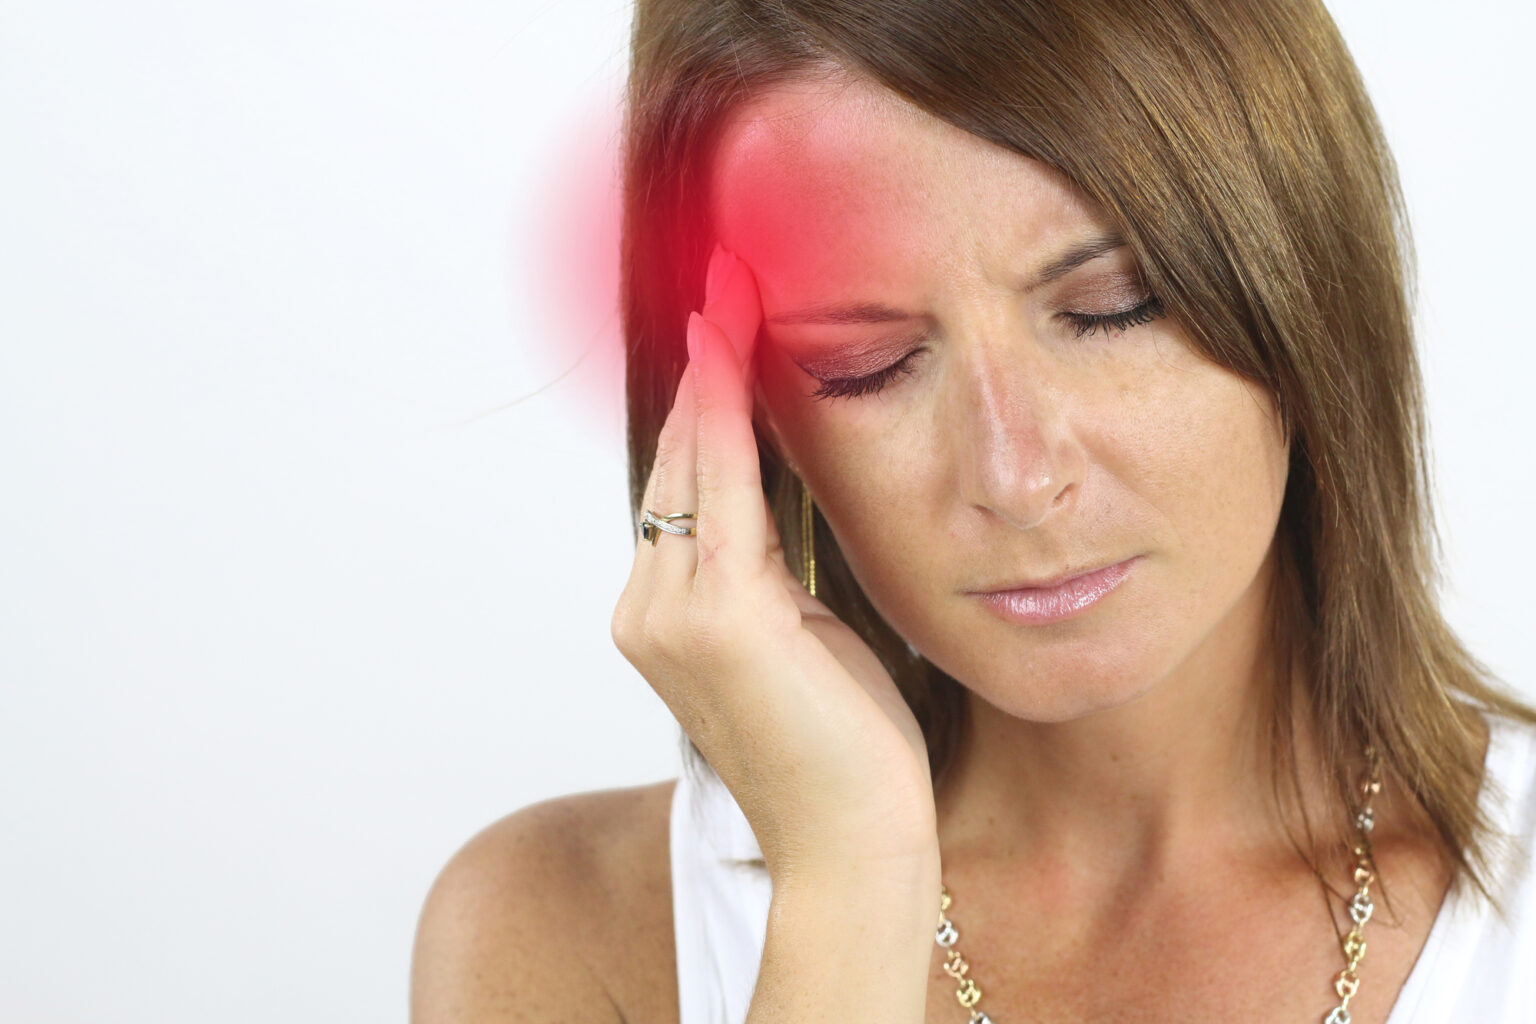 Can my dentist help with migraines?